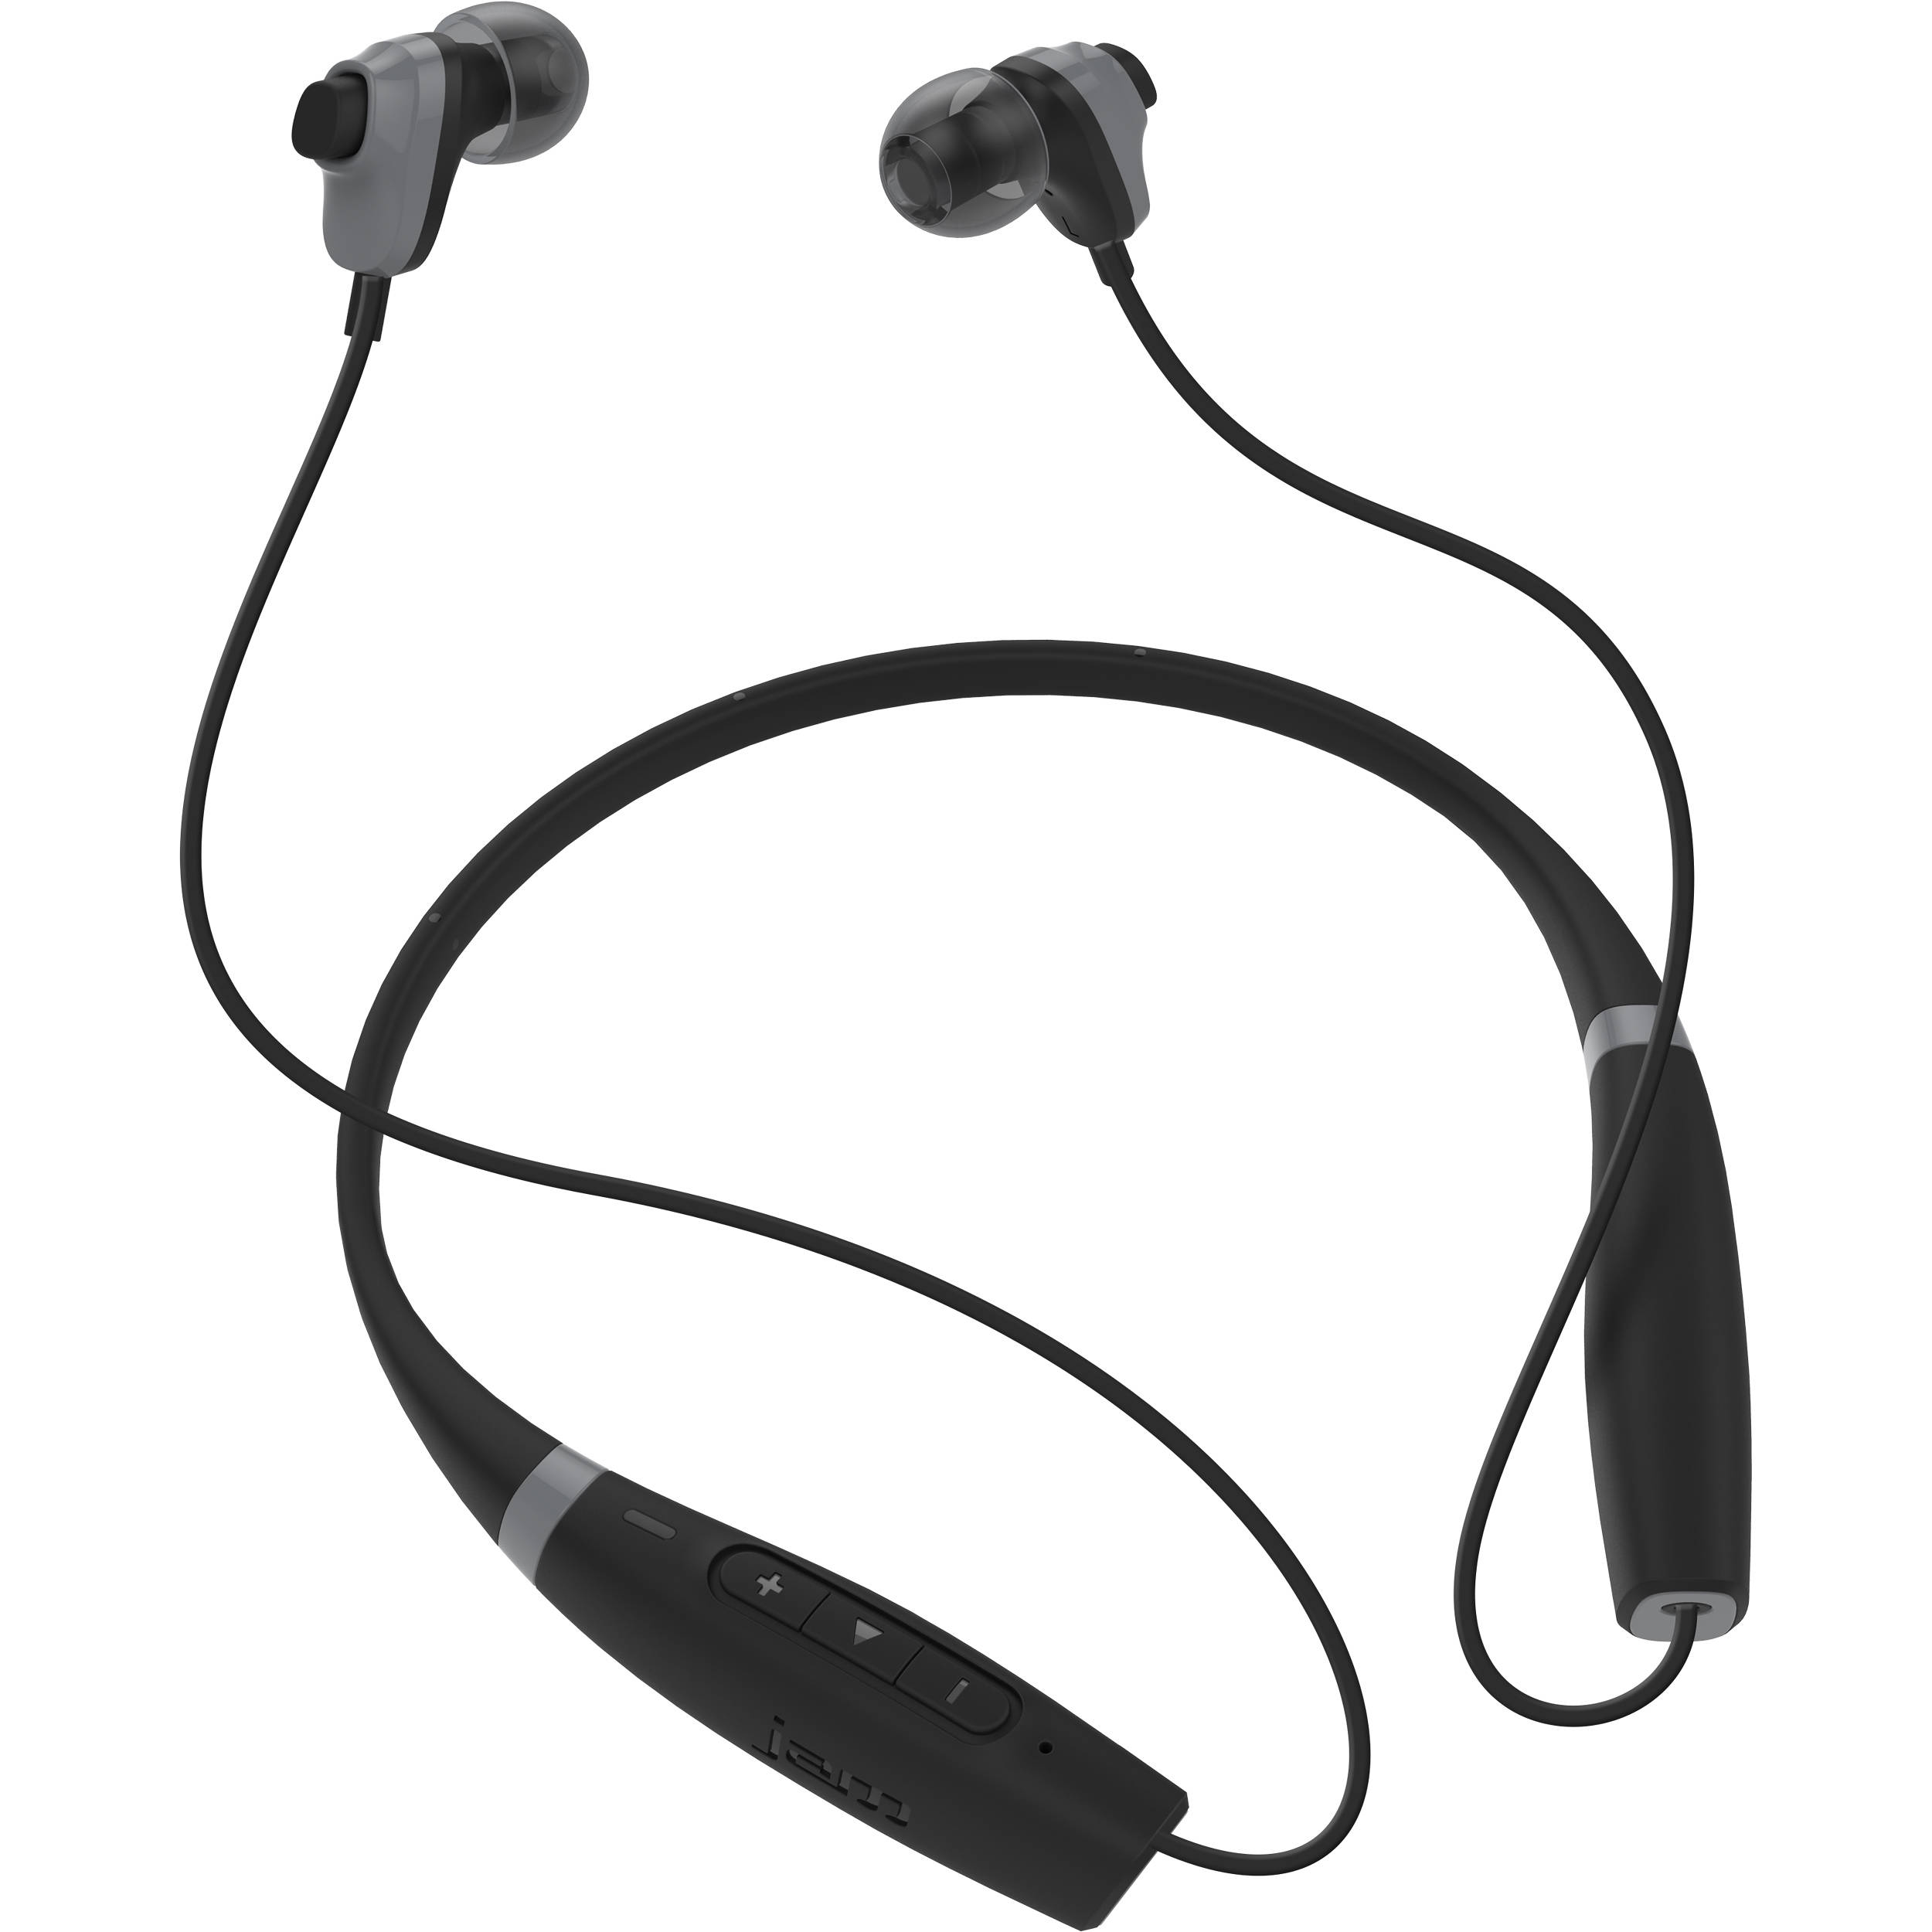 jam comfort buds collared bluetooth earbuds hx ep700bk b h photo. Black Bedroom Furniture Sets. Home Design Ideas